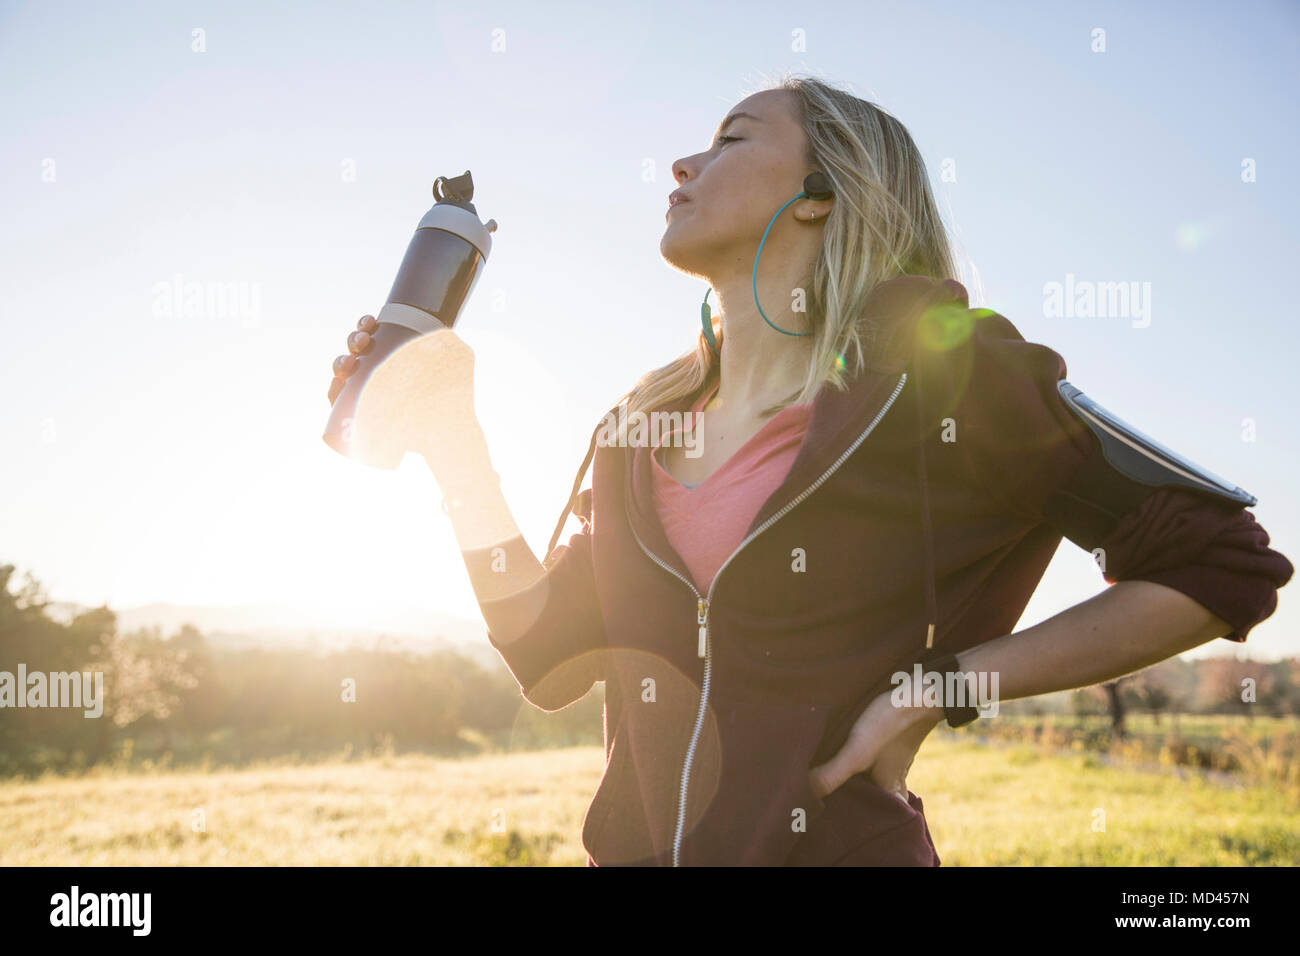 Young woman exercising outdoors, holding water bottle - Stock Image